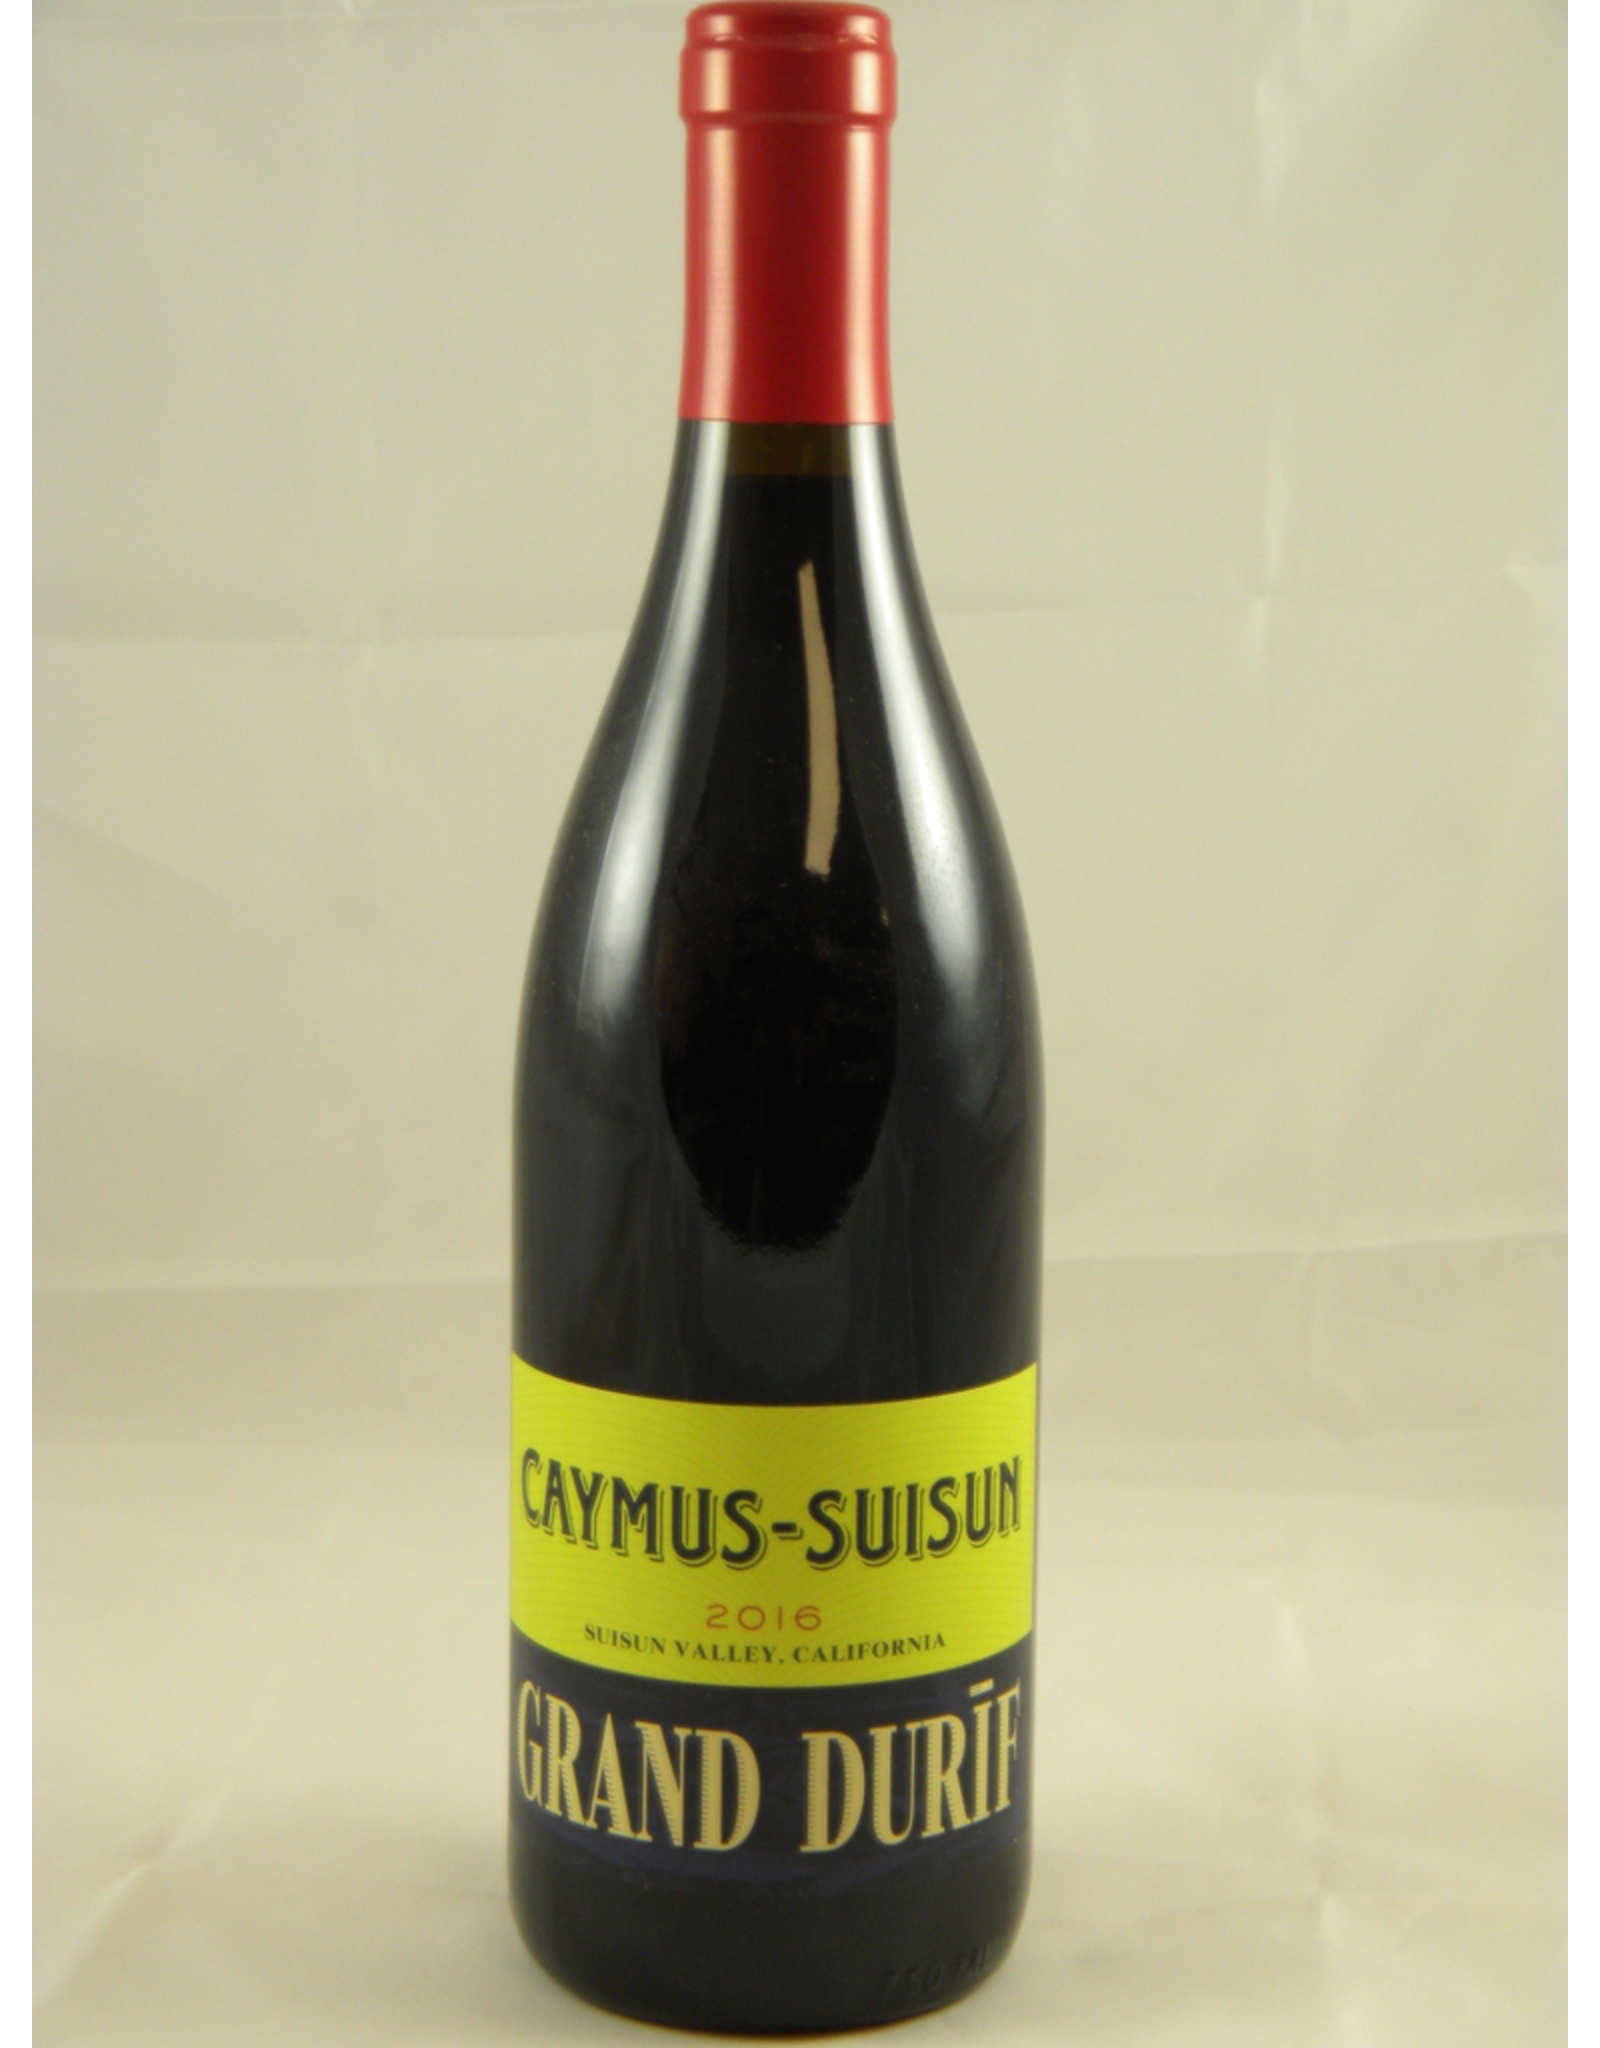 Caymus Caymus Grand Durif Suisun Valley 2017